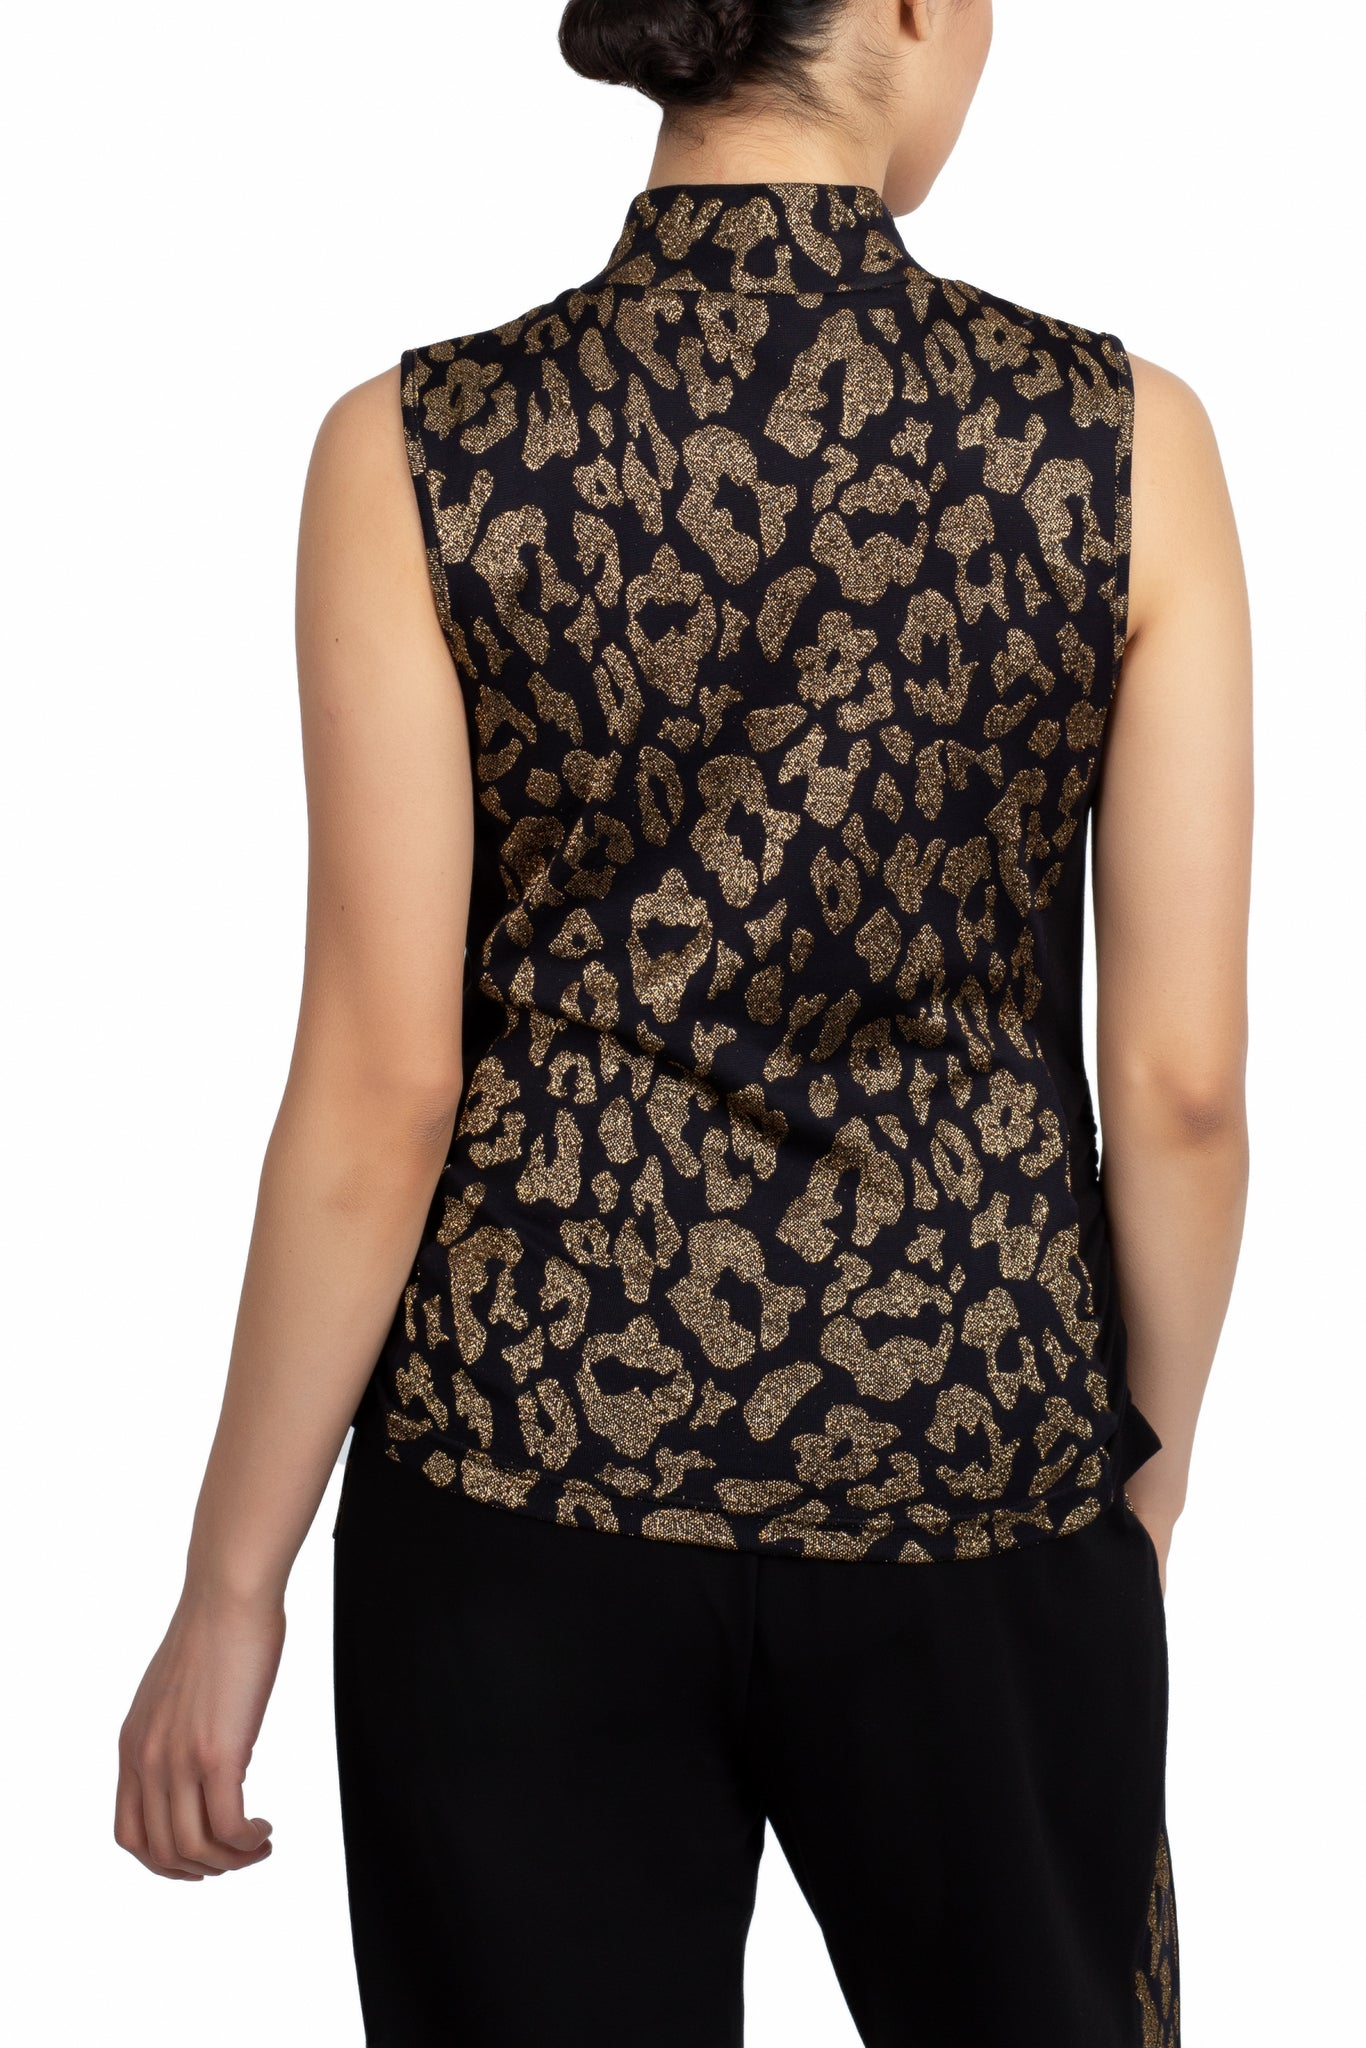 Sparkling Leopard Mock Neck Tank* (Black Gold)